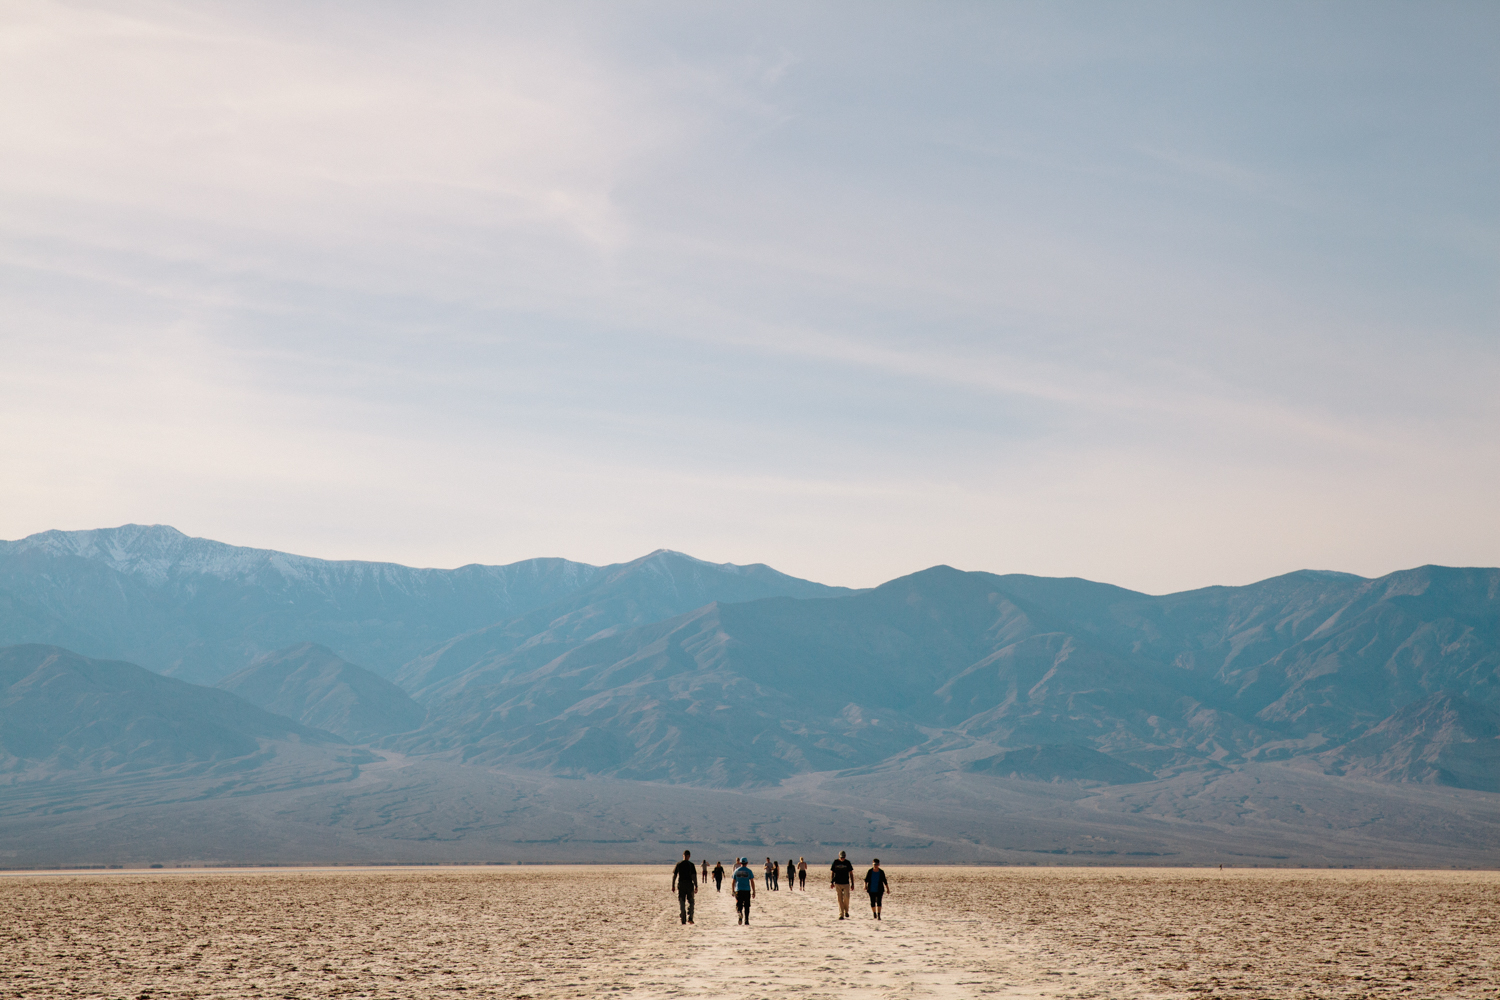 Helynn_Ospina_Travel_Death_Valley_California_01747-22.jpg